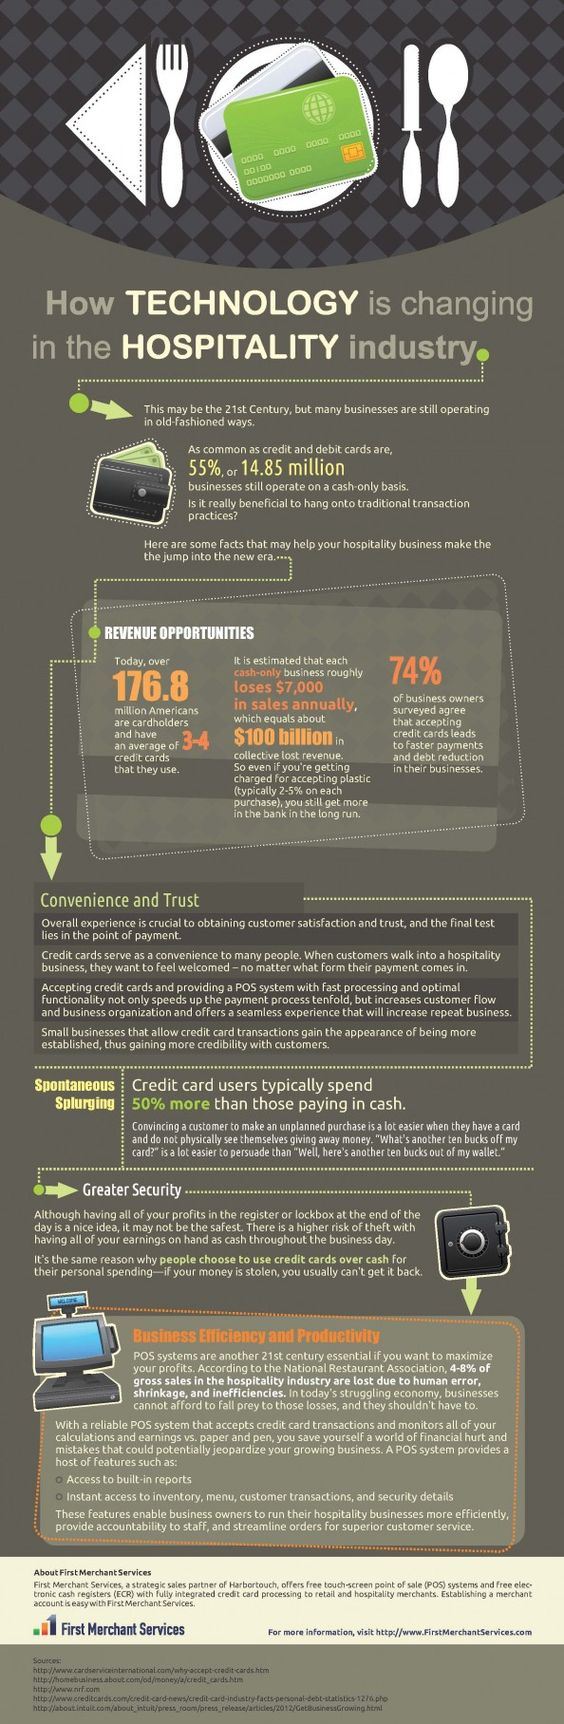 How Technology is Changing in the Hospitality Industry Infographic